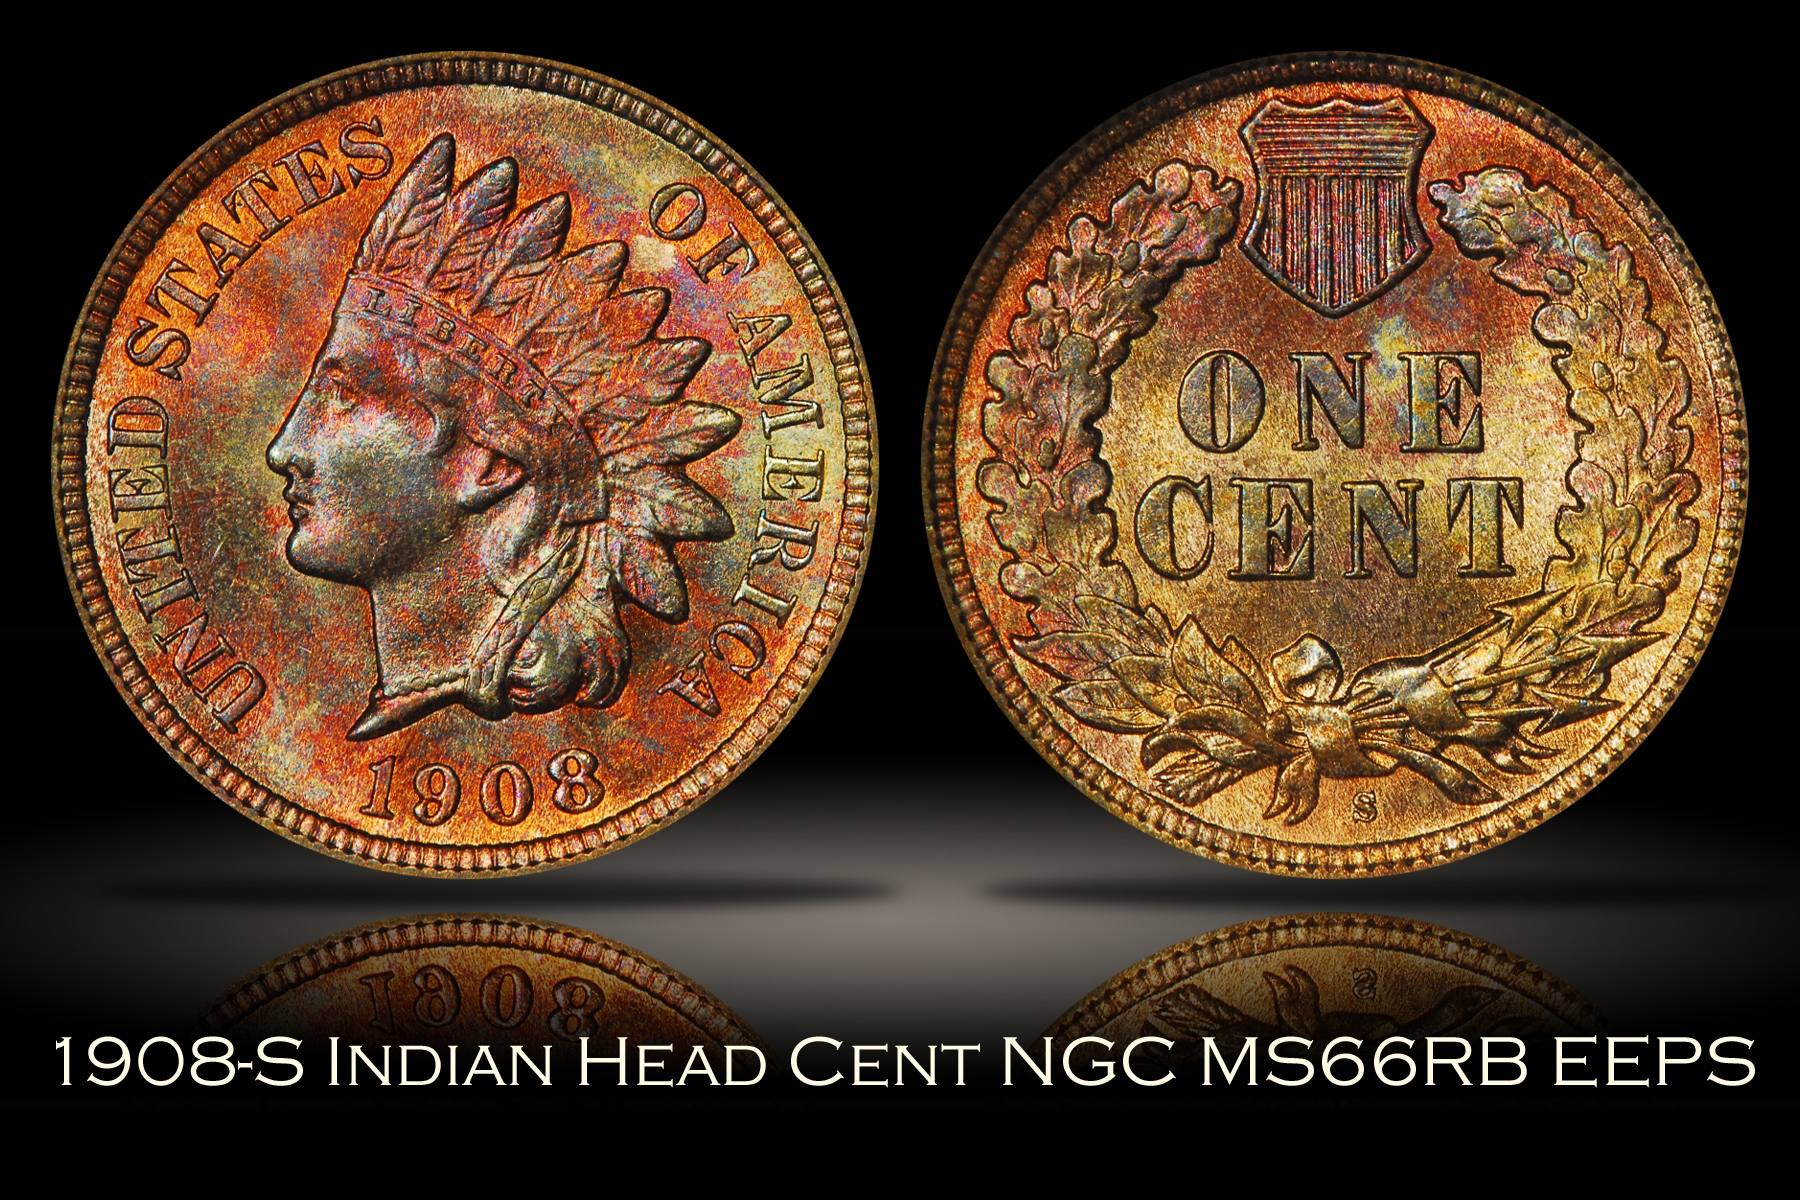 1908-S Indian Head Cent NGC MS66RB Eagle Eye Photo Seal